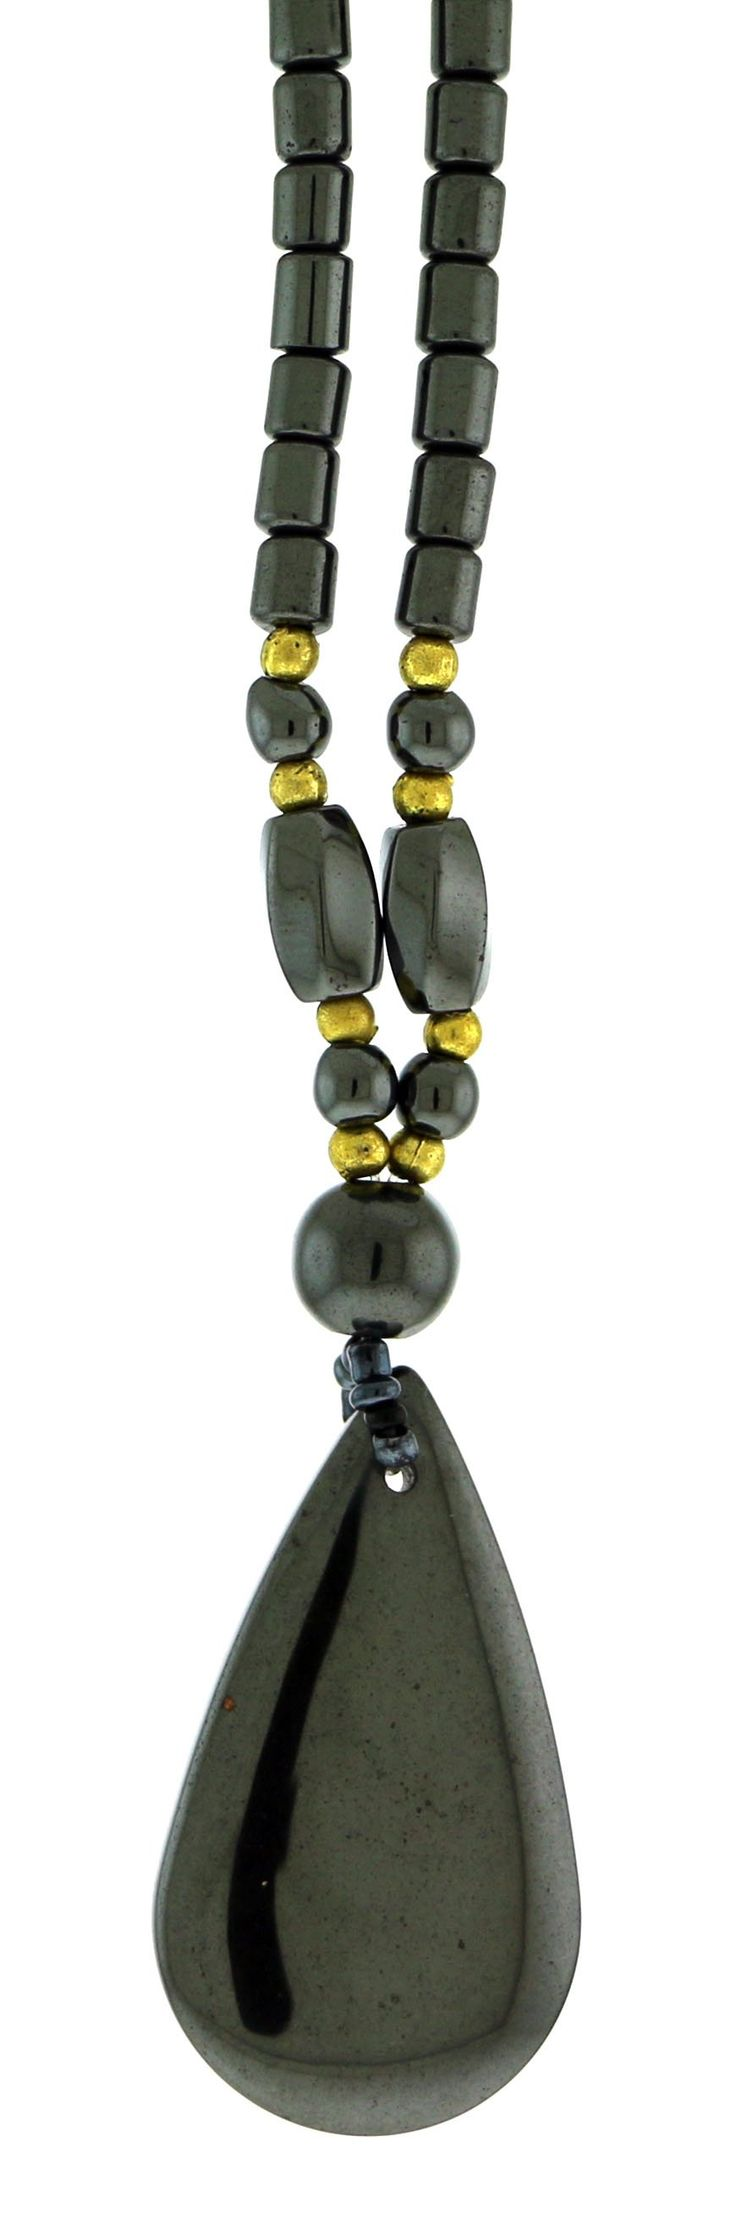 Beaded Hematite Necklace With Tear Drop Shaped Charm And Gold-Tone Bead Accents HN010